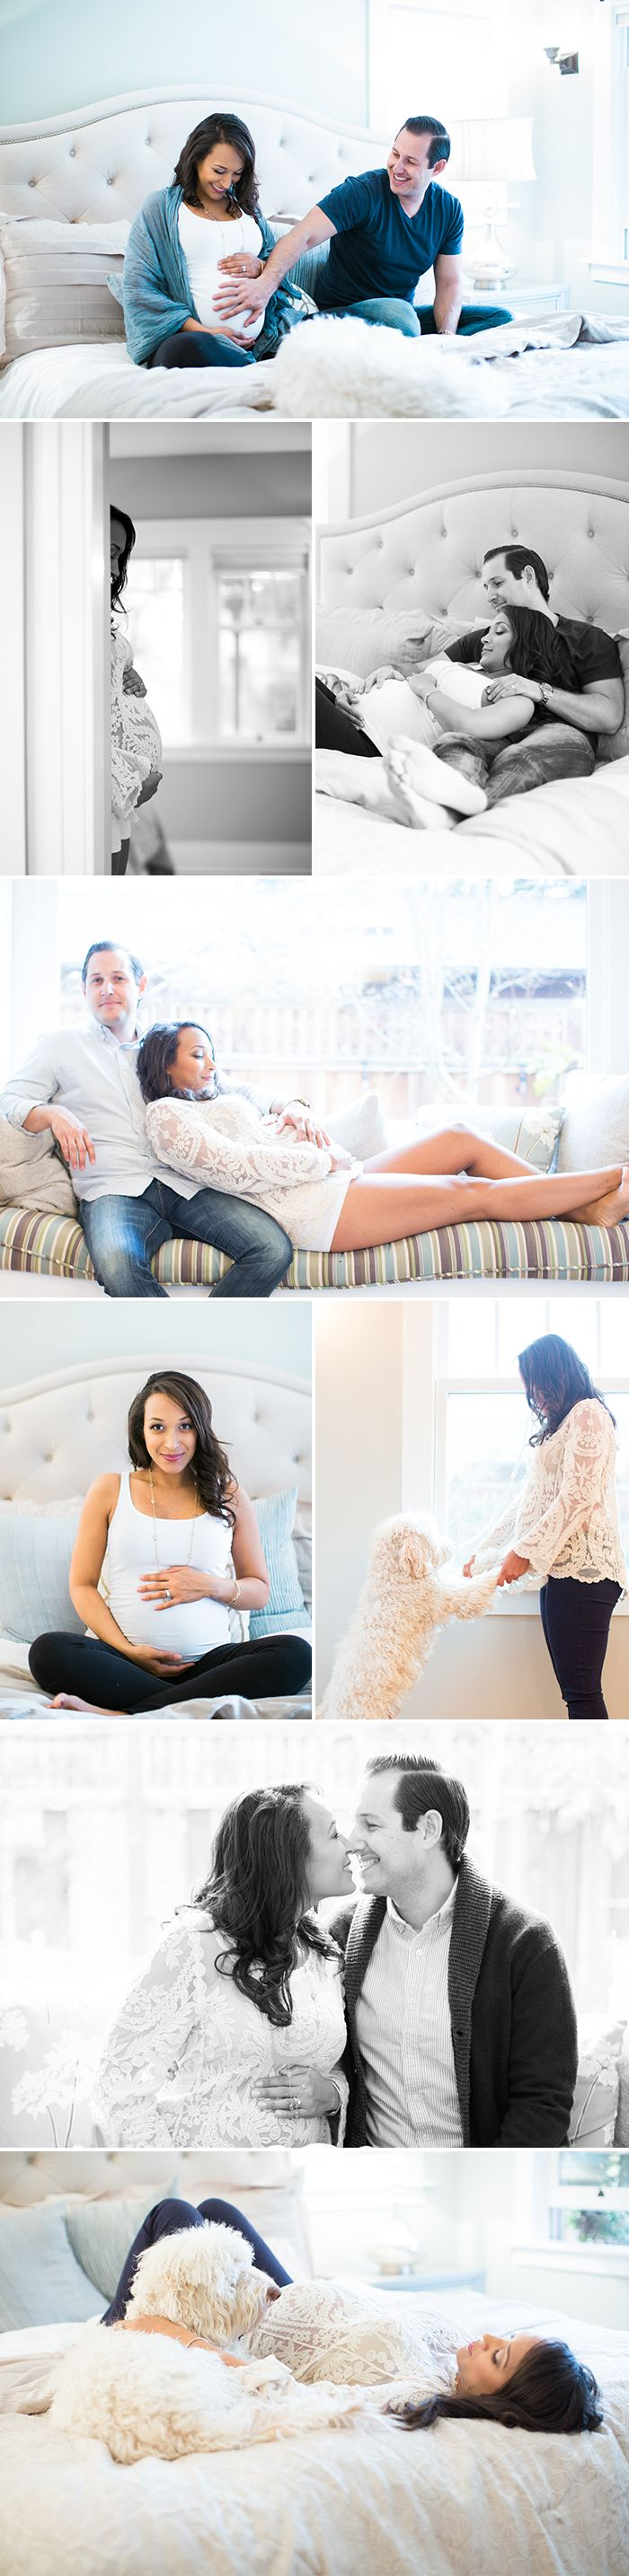 Love our at home maternity photos!                                                                                                                                                                                 More